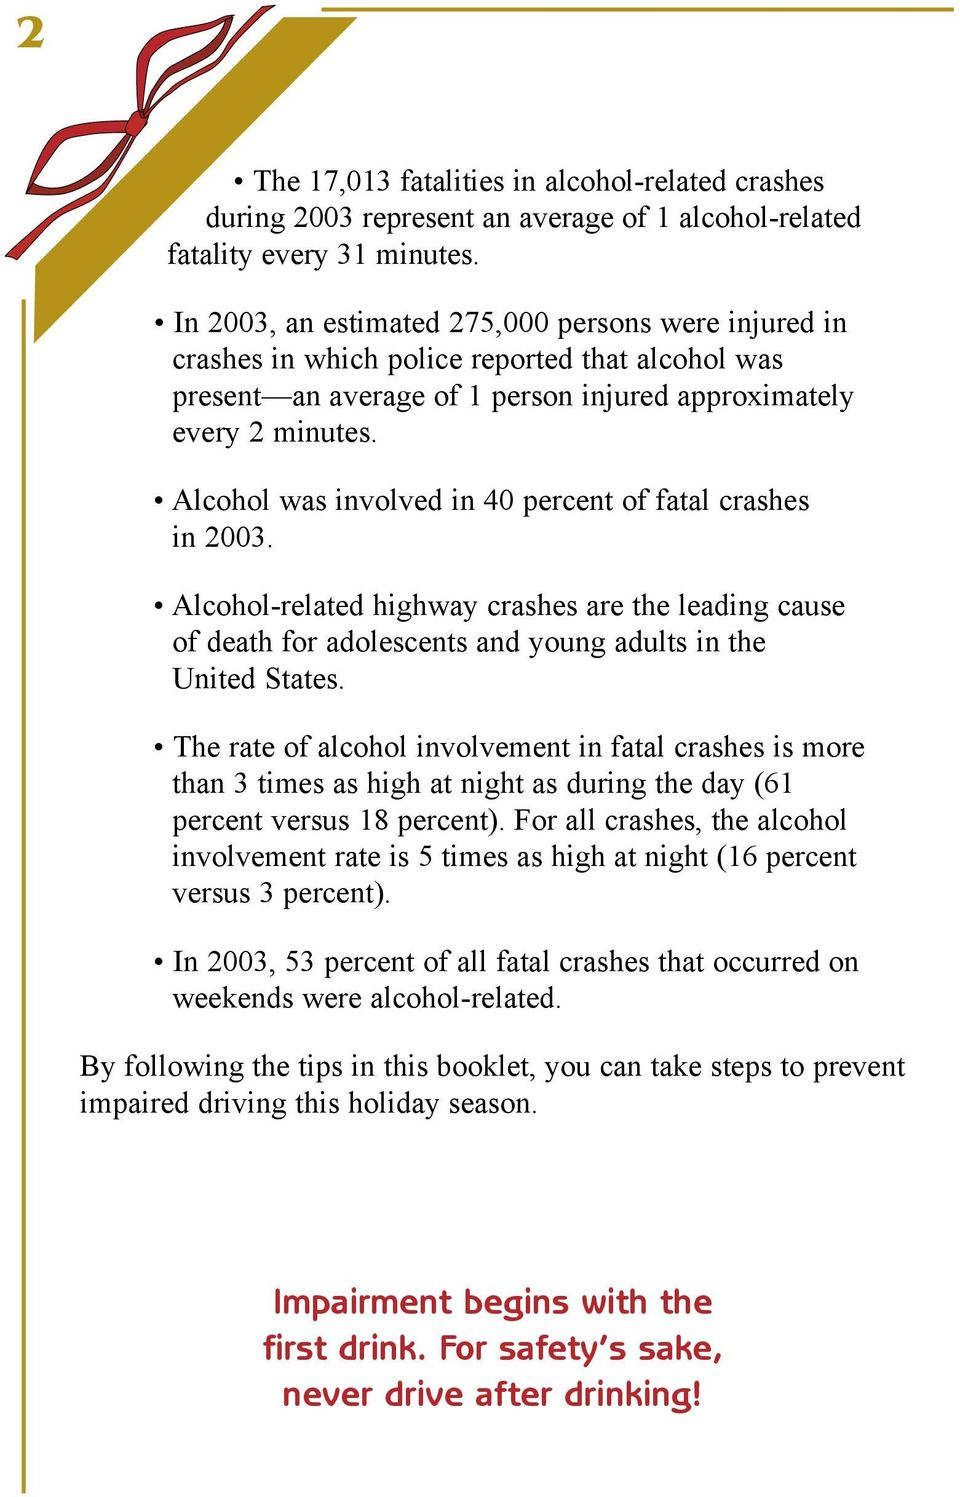 Alcohol was involved in 40 percent of fatal crashes in 2003. Alcohol-related highway crashes are the leading cause of death for adolescents and young adults in the United States.